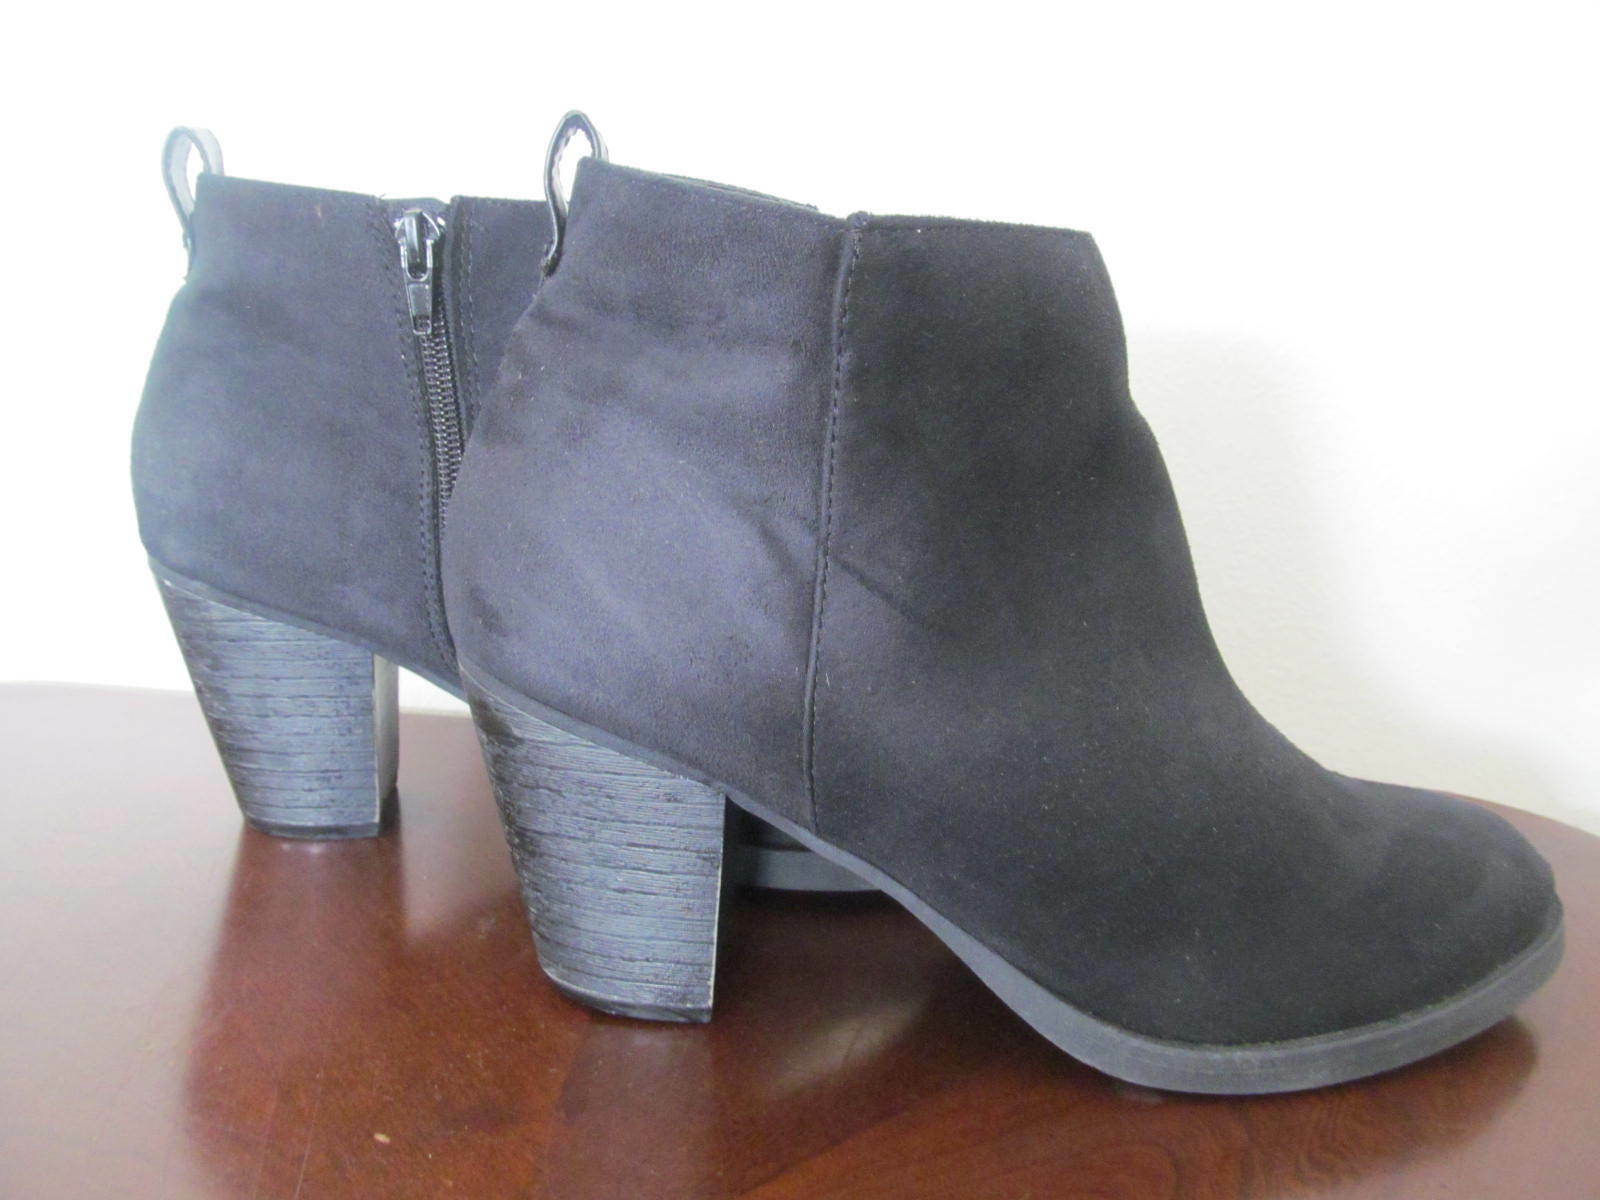 Women's Ankle Boots US Size 9 Charlotte Russe Black Heel 31/2 Suede Look